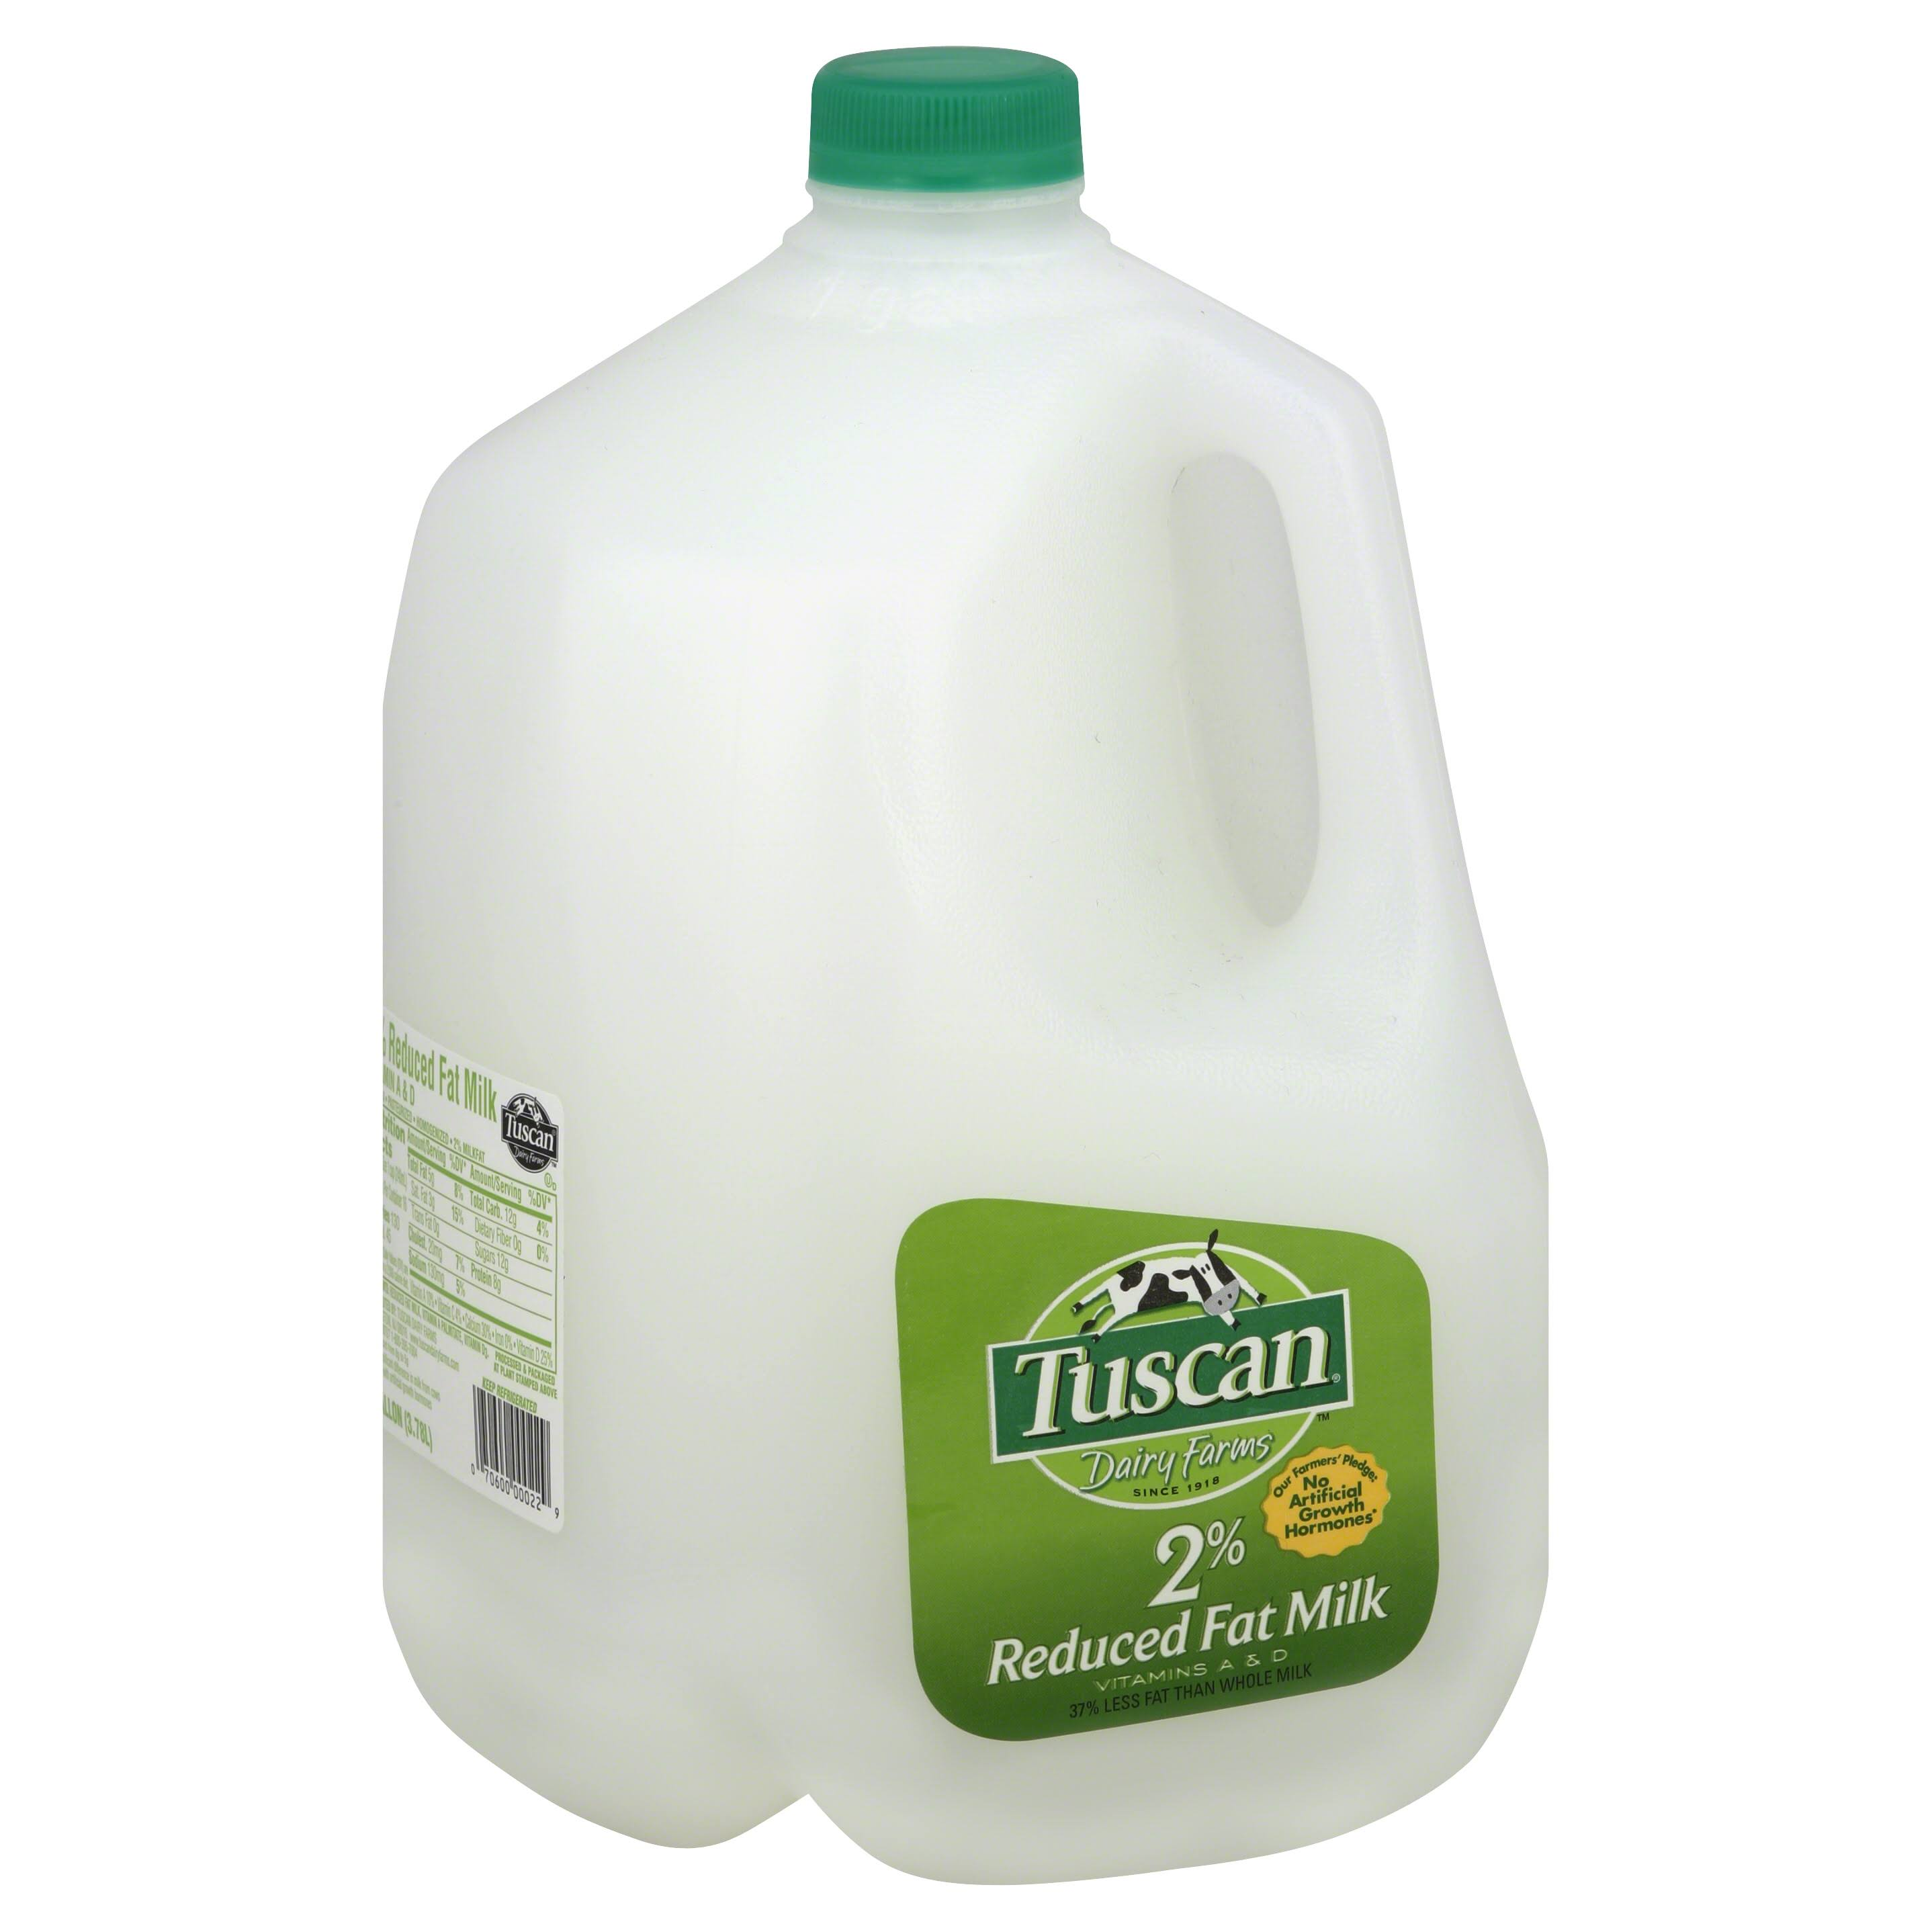 Tuscan Milk, Reduced Fat, 2% Milkfat - 1 gl (3.78 lt)